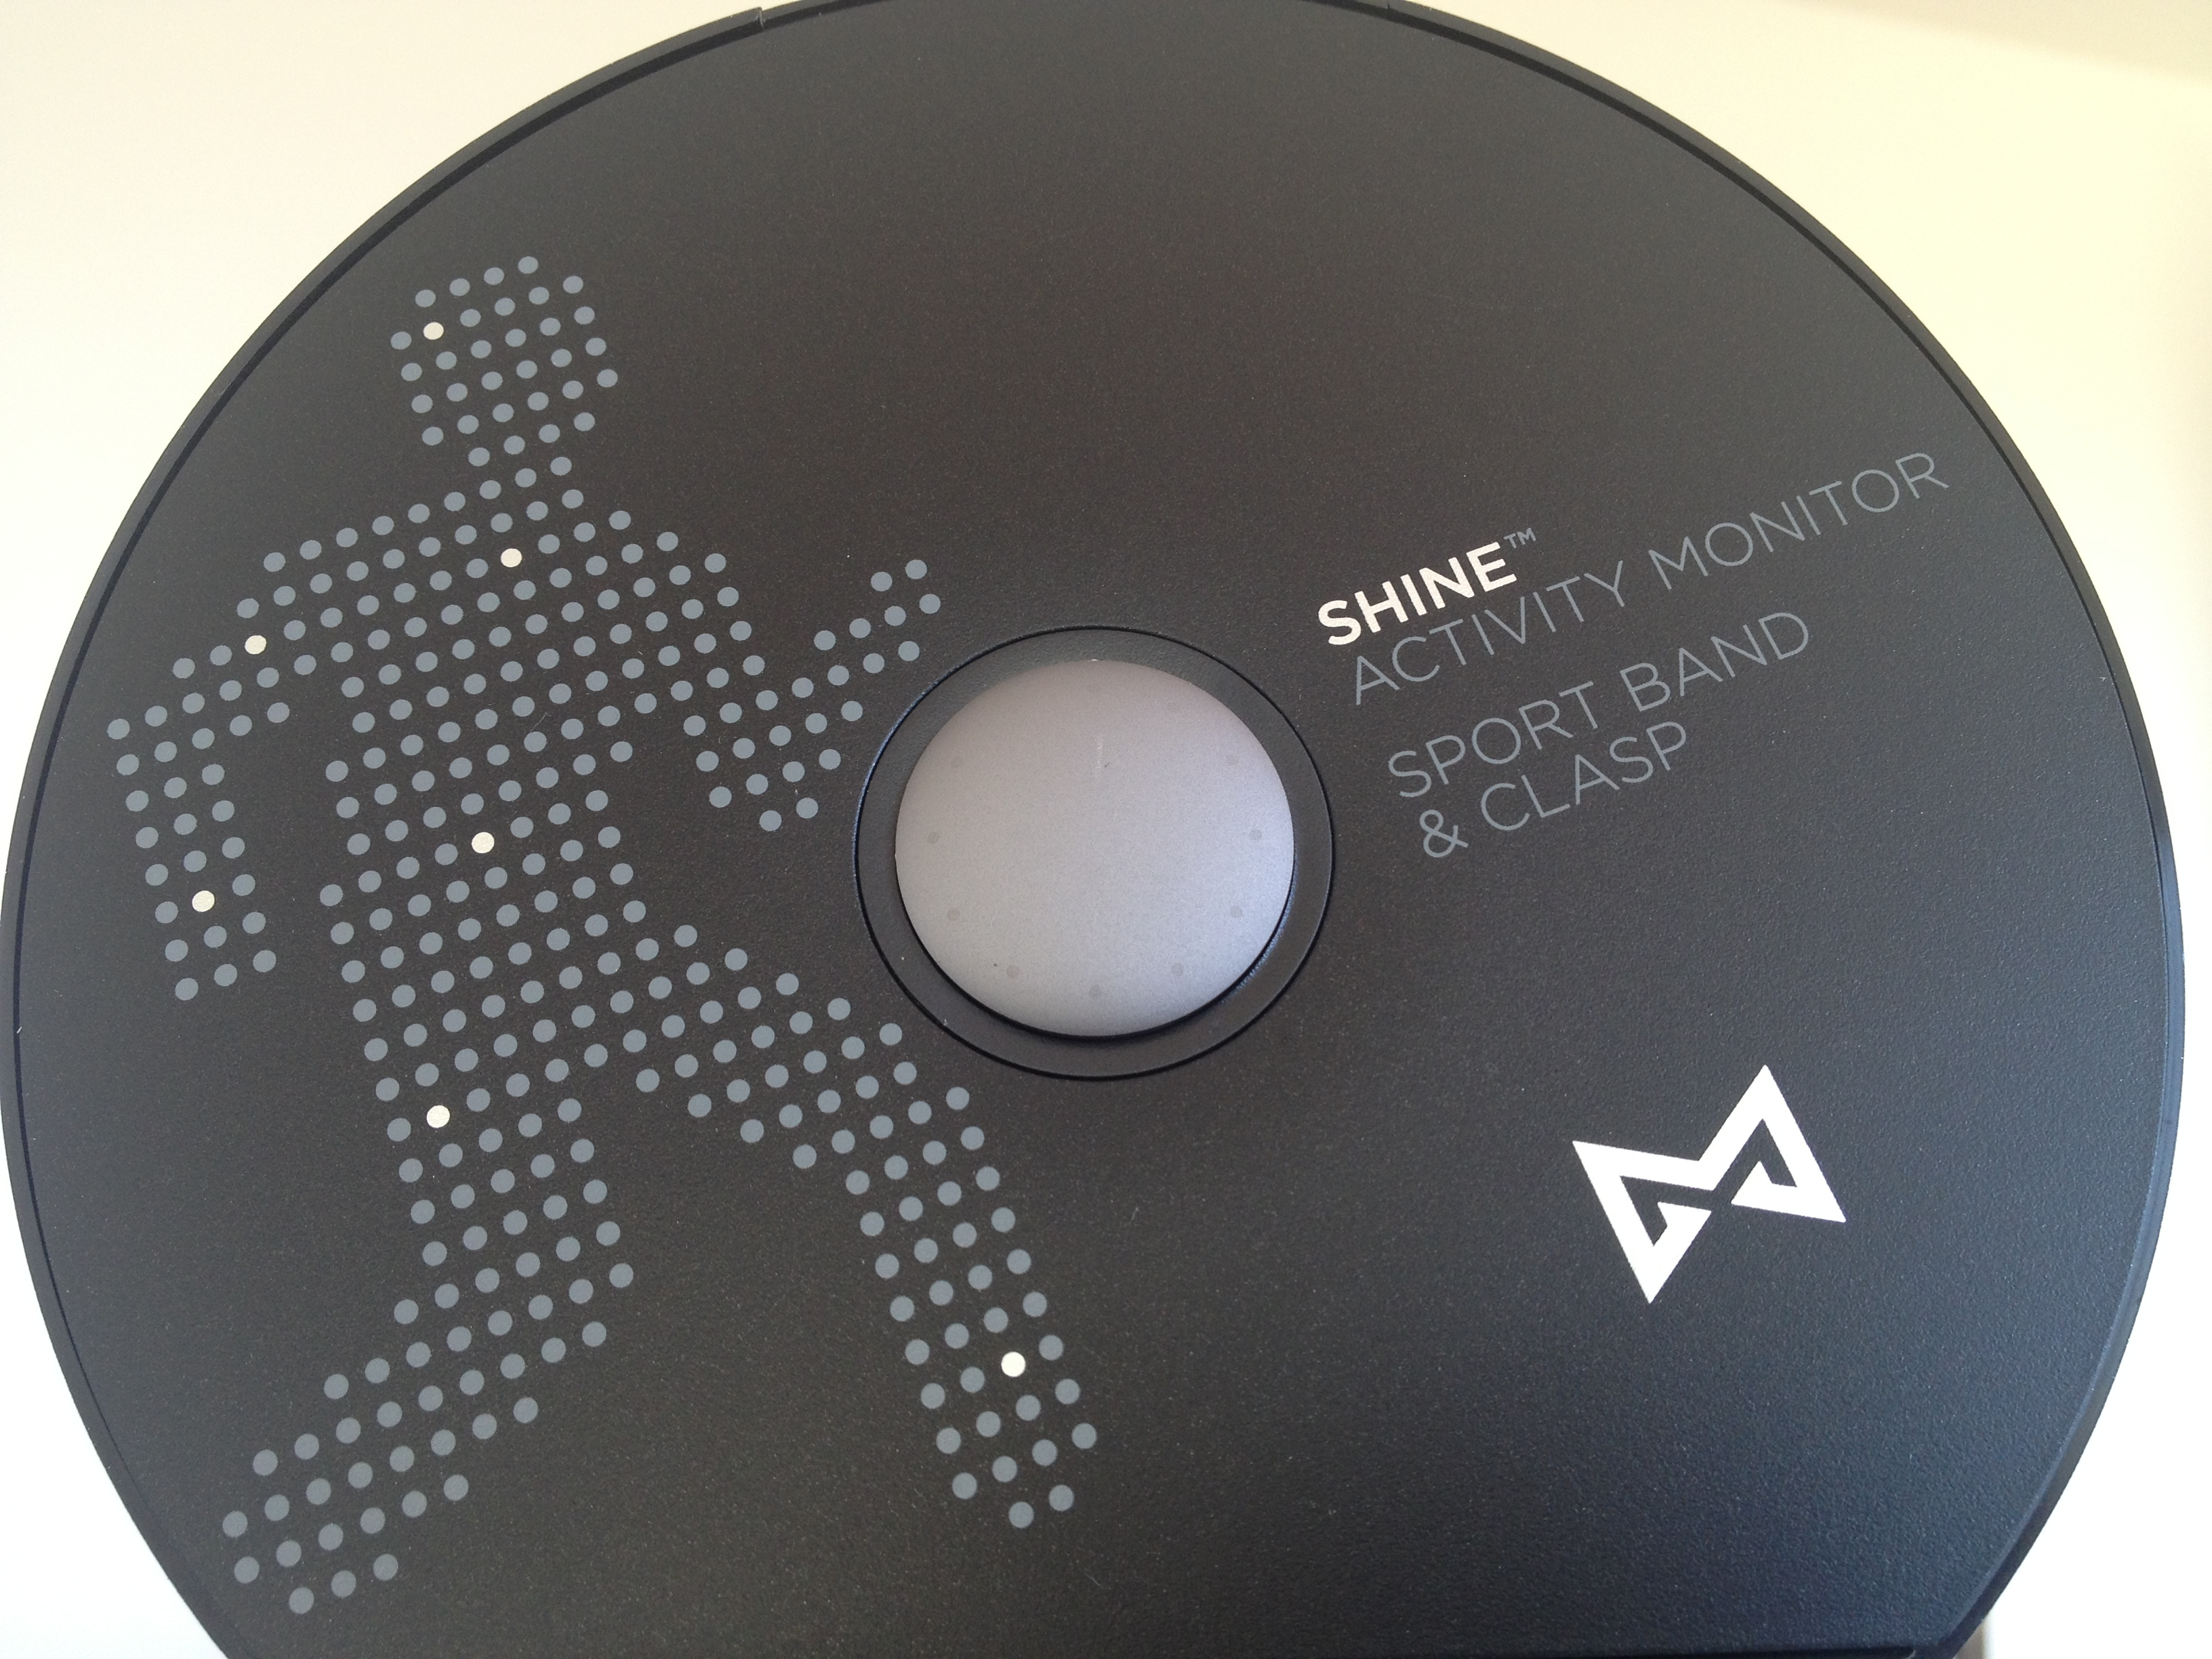 The Misfit Shine packaging